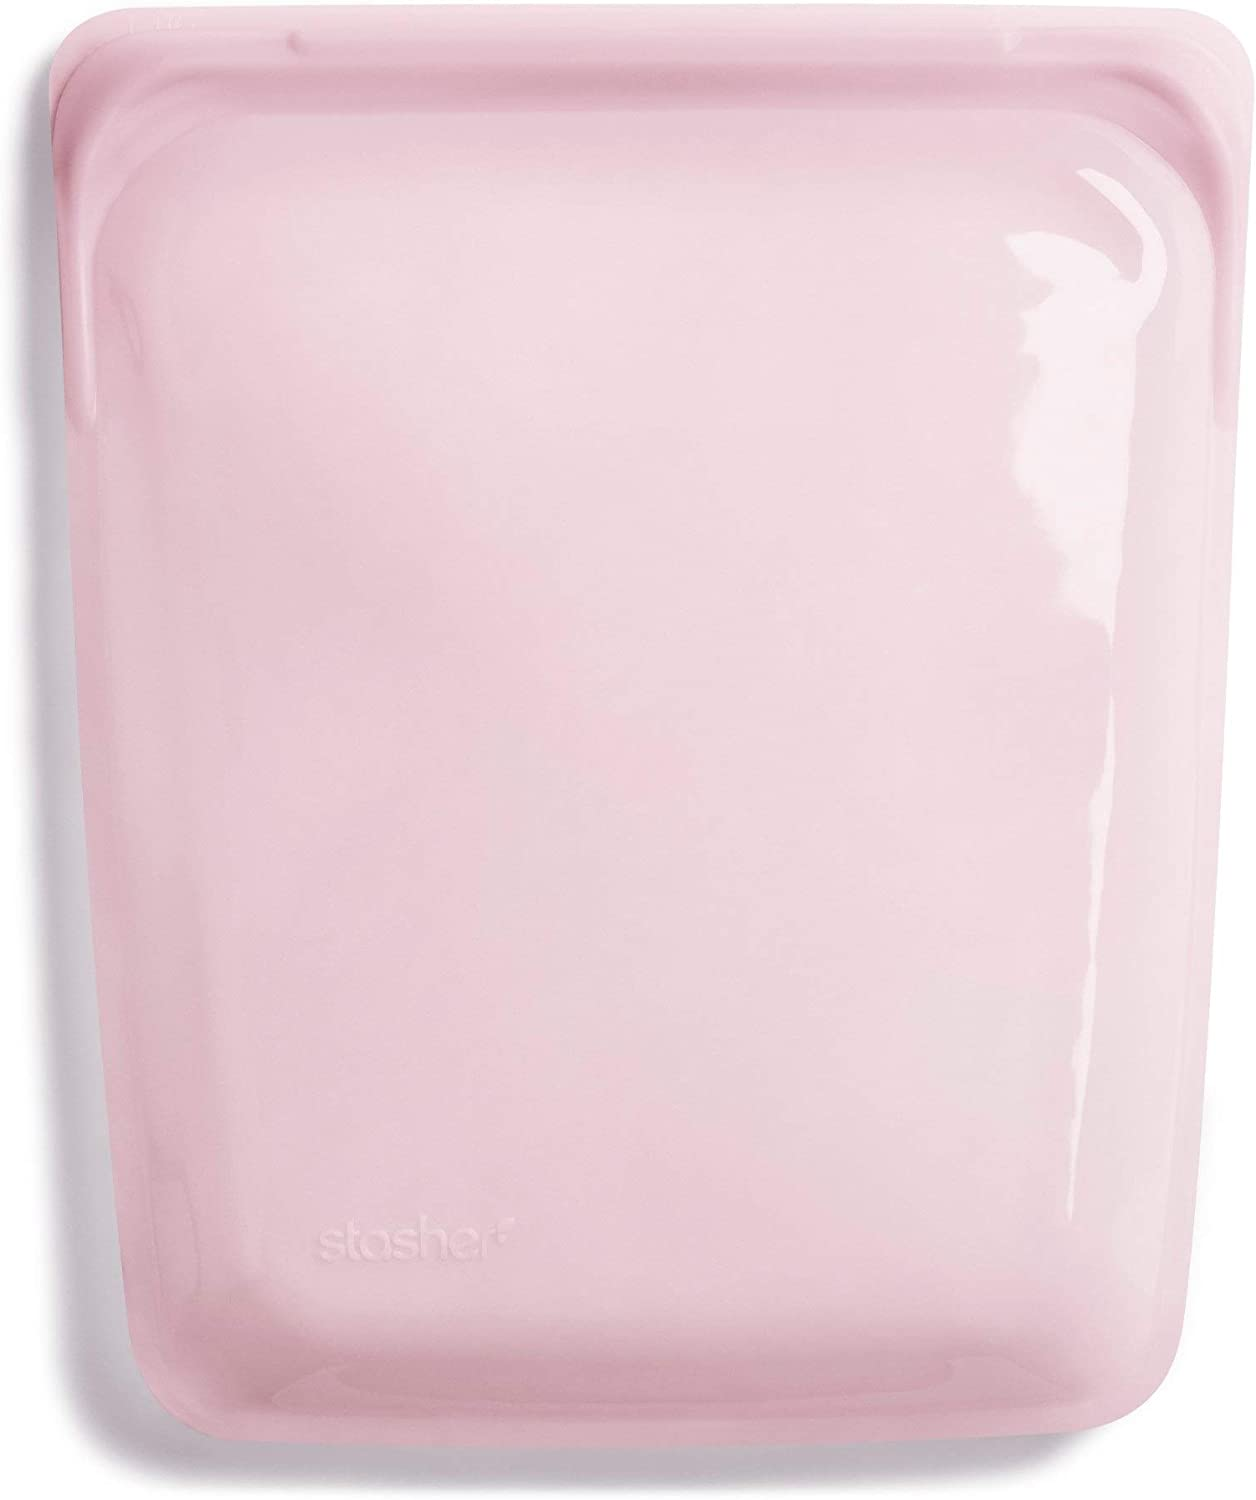 Stasher 100% Silicone Food Grade Reusable Storage Bag, Rose Quartz (1/2 Gallon) | Reduce Single-Use Plastic | Cook, Store, Sous Vide, Freeze | Leakproof, Dishwasher-Safe, Eco-friendly, Non-Toxic | 64 Oz